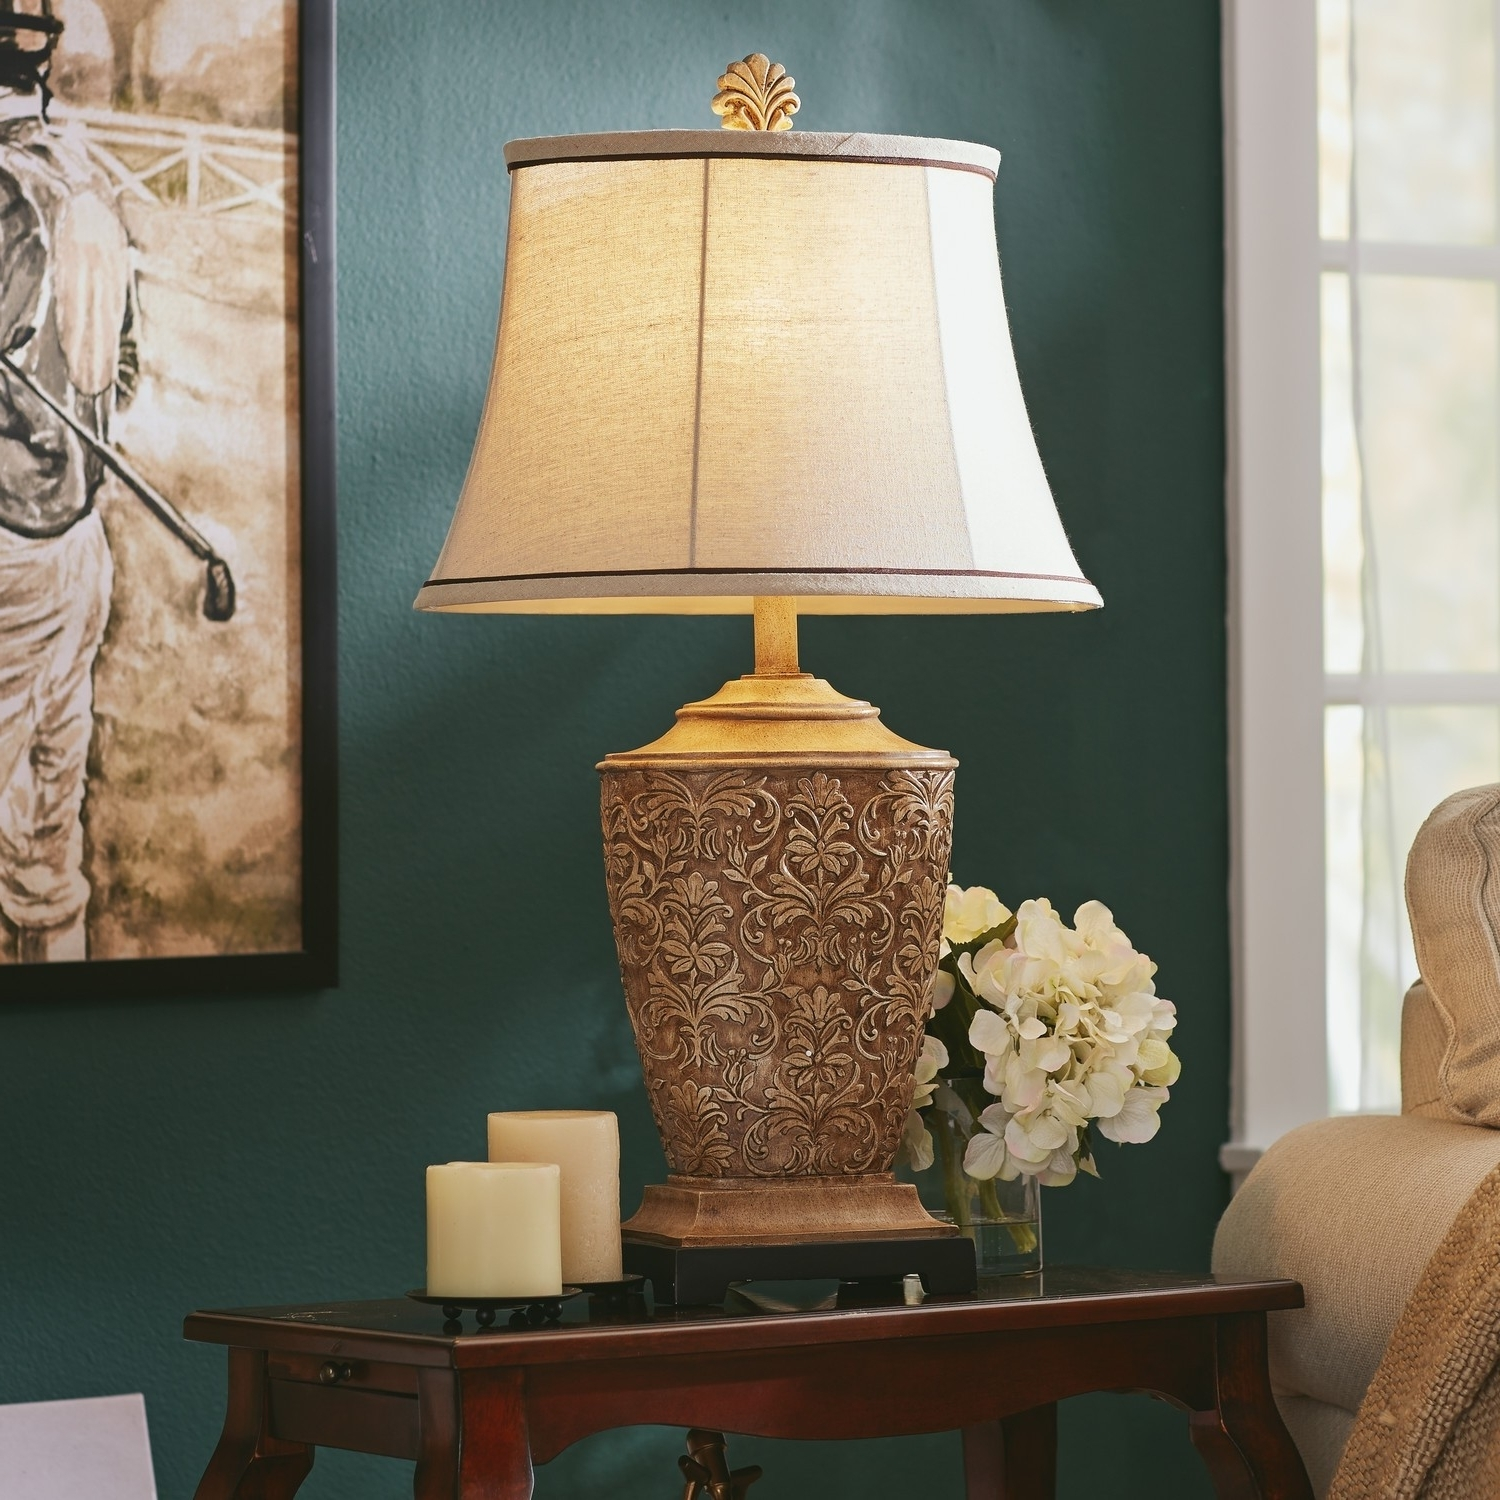 Most Current Table Lamps For Modern Living Room Regarding Table Lamps For Living Room Fresh Table Lamps For Living Room At (View 17 of 20)